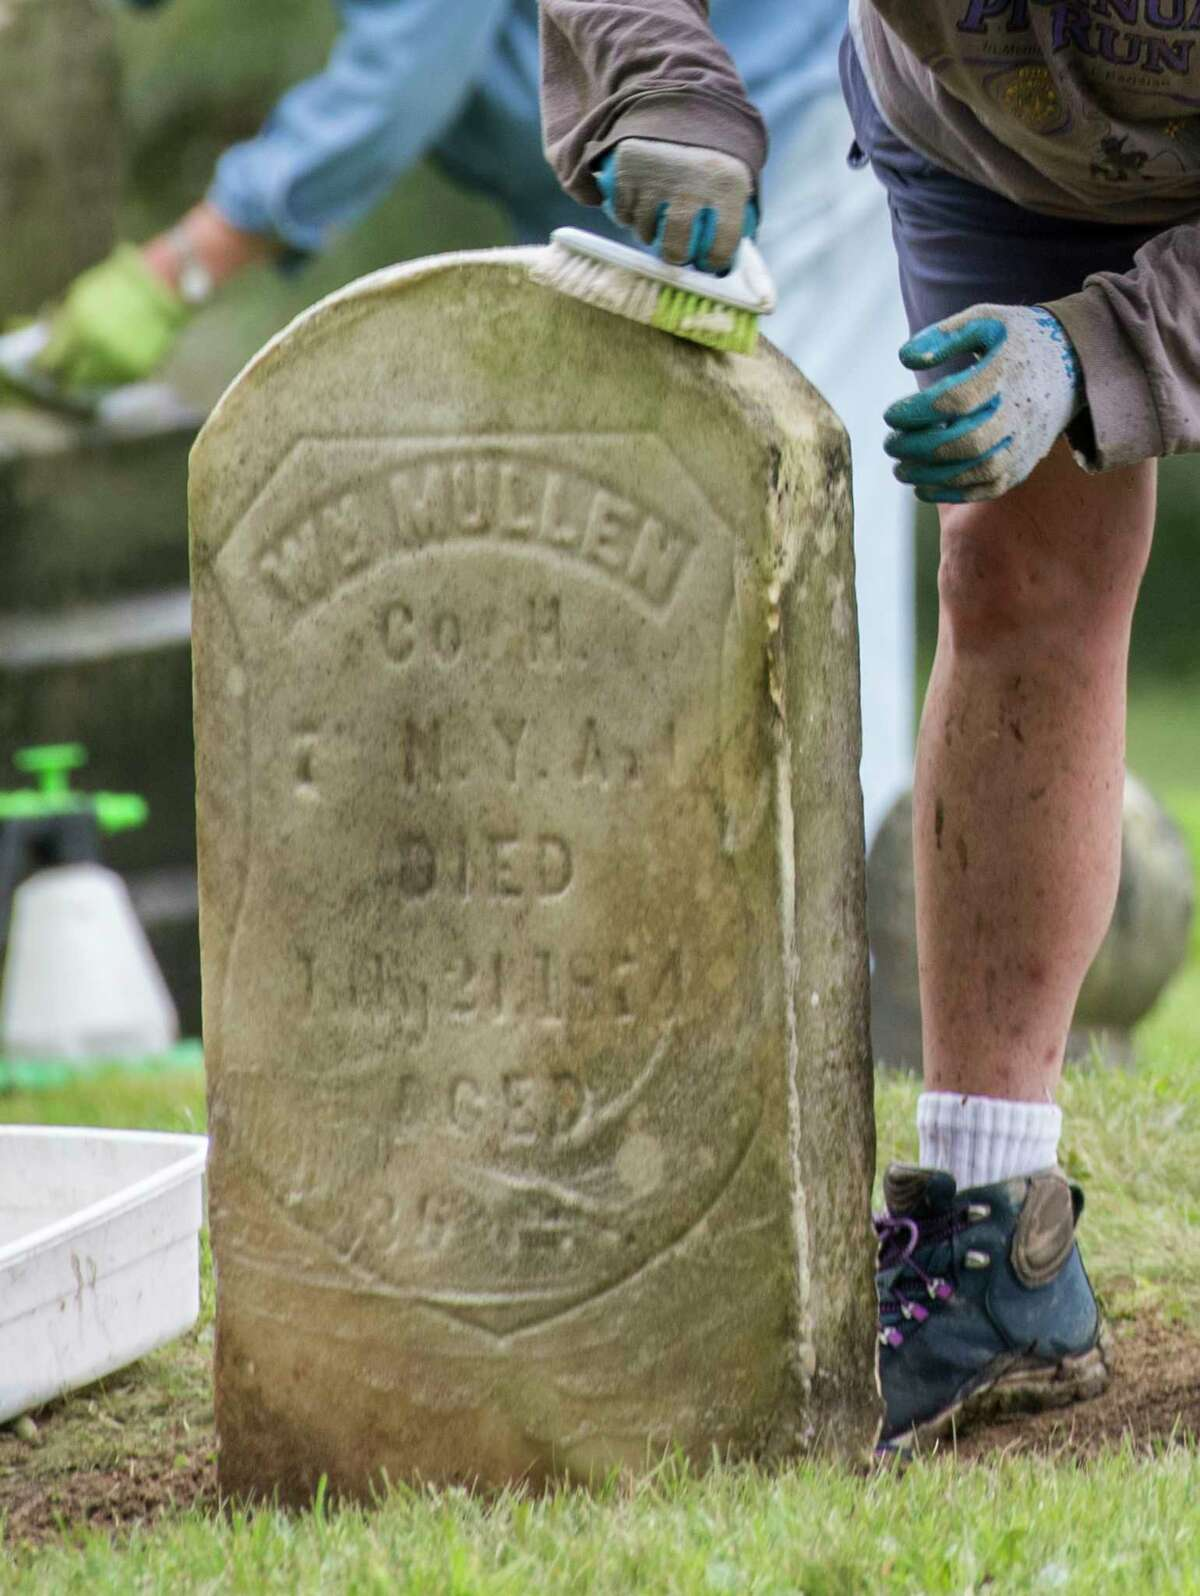 Volunteers Nancy Poulin, foreground and Chris Connell, background scrub grave stones during their restoration at the St. Patrick's Cemetery as part of the Veterans Memorial Restoration Program that is going on at the cemetery Thursday Oct.4, 2018 in Watervliet, N.Y. (Skip Dickstein/Times Union)